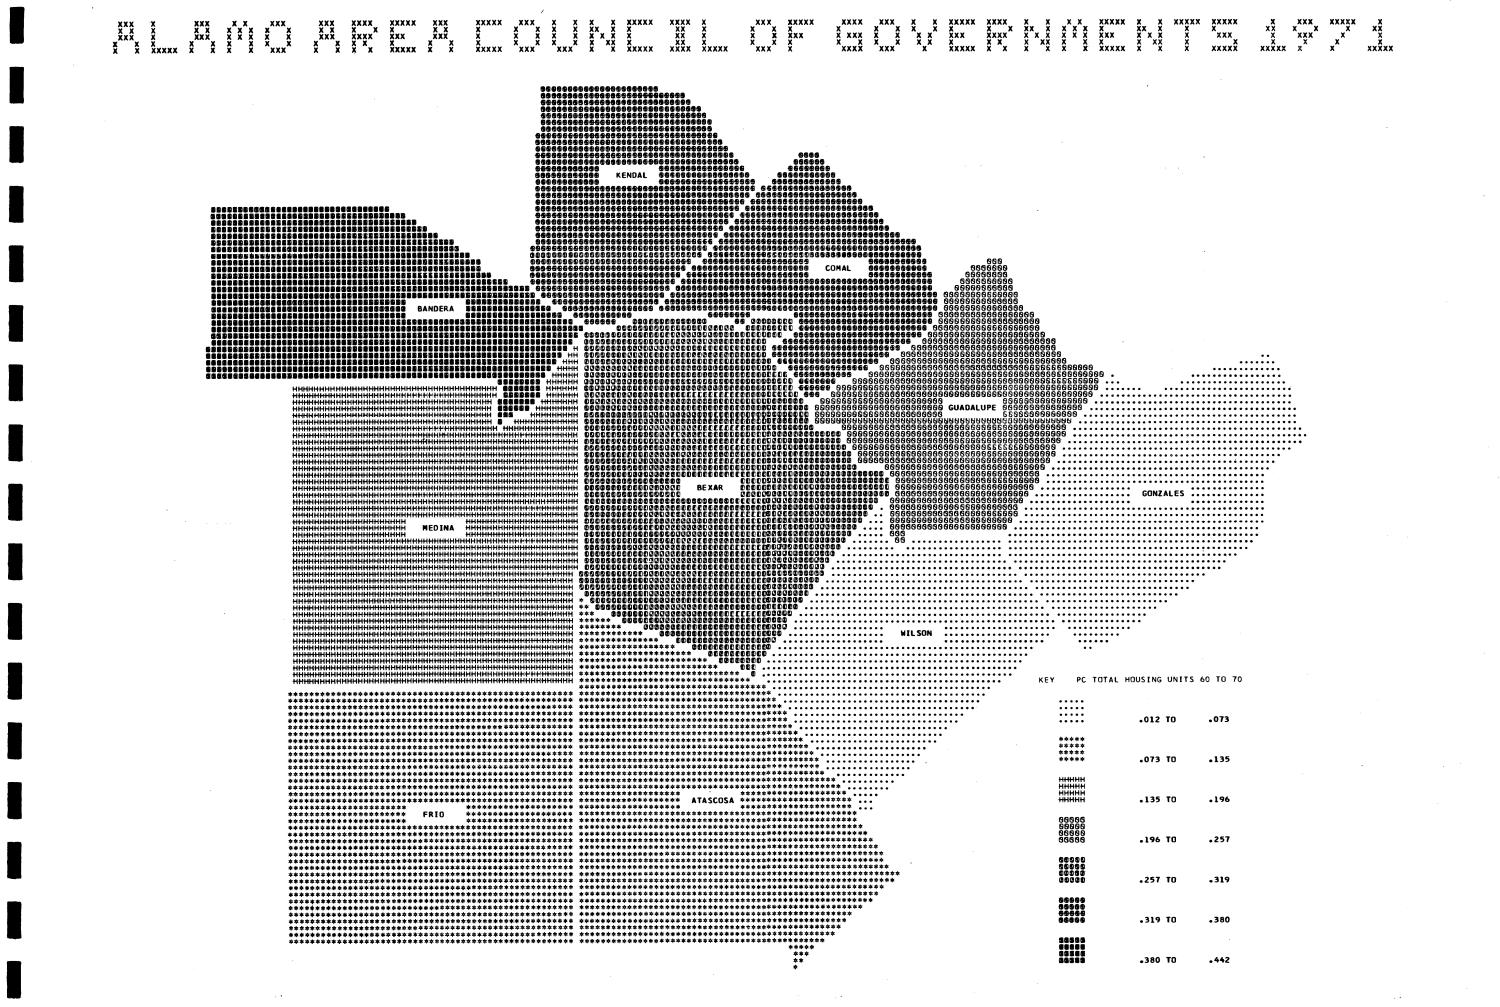 1970 Census of Population & Housing for the Alamo Area ...